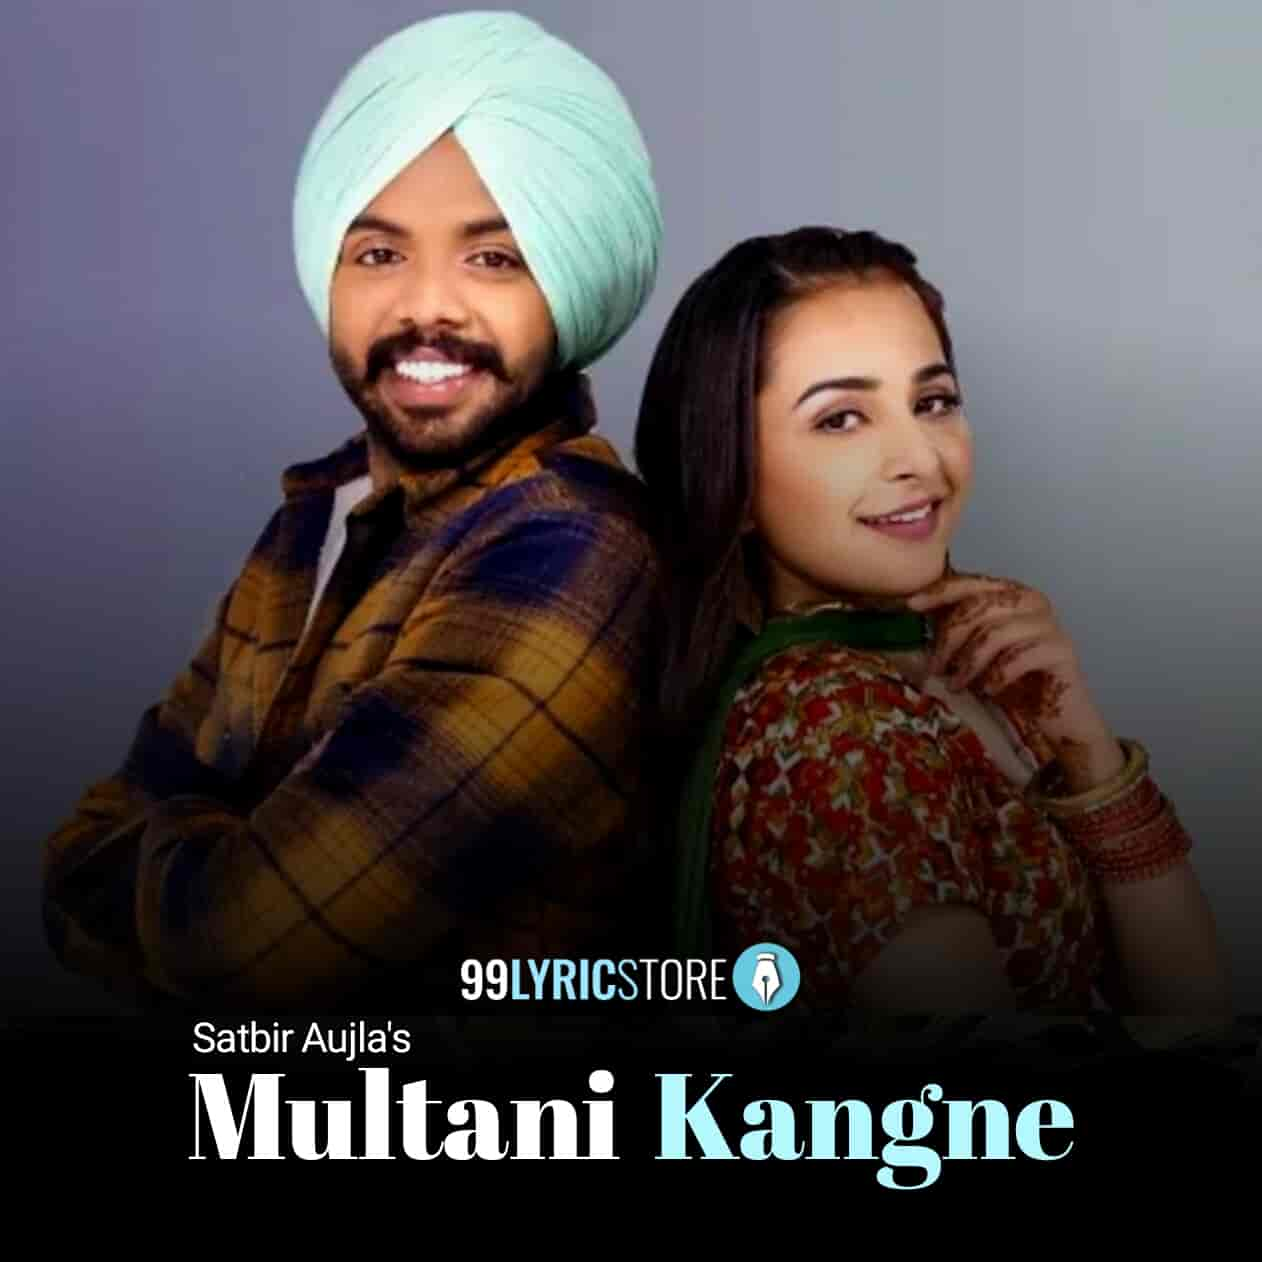 Multani Kangne Satbir Aujla Song Images